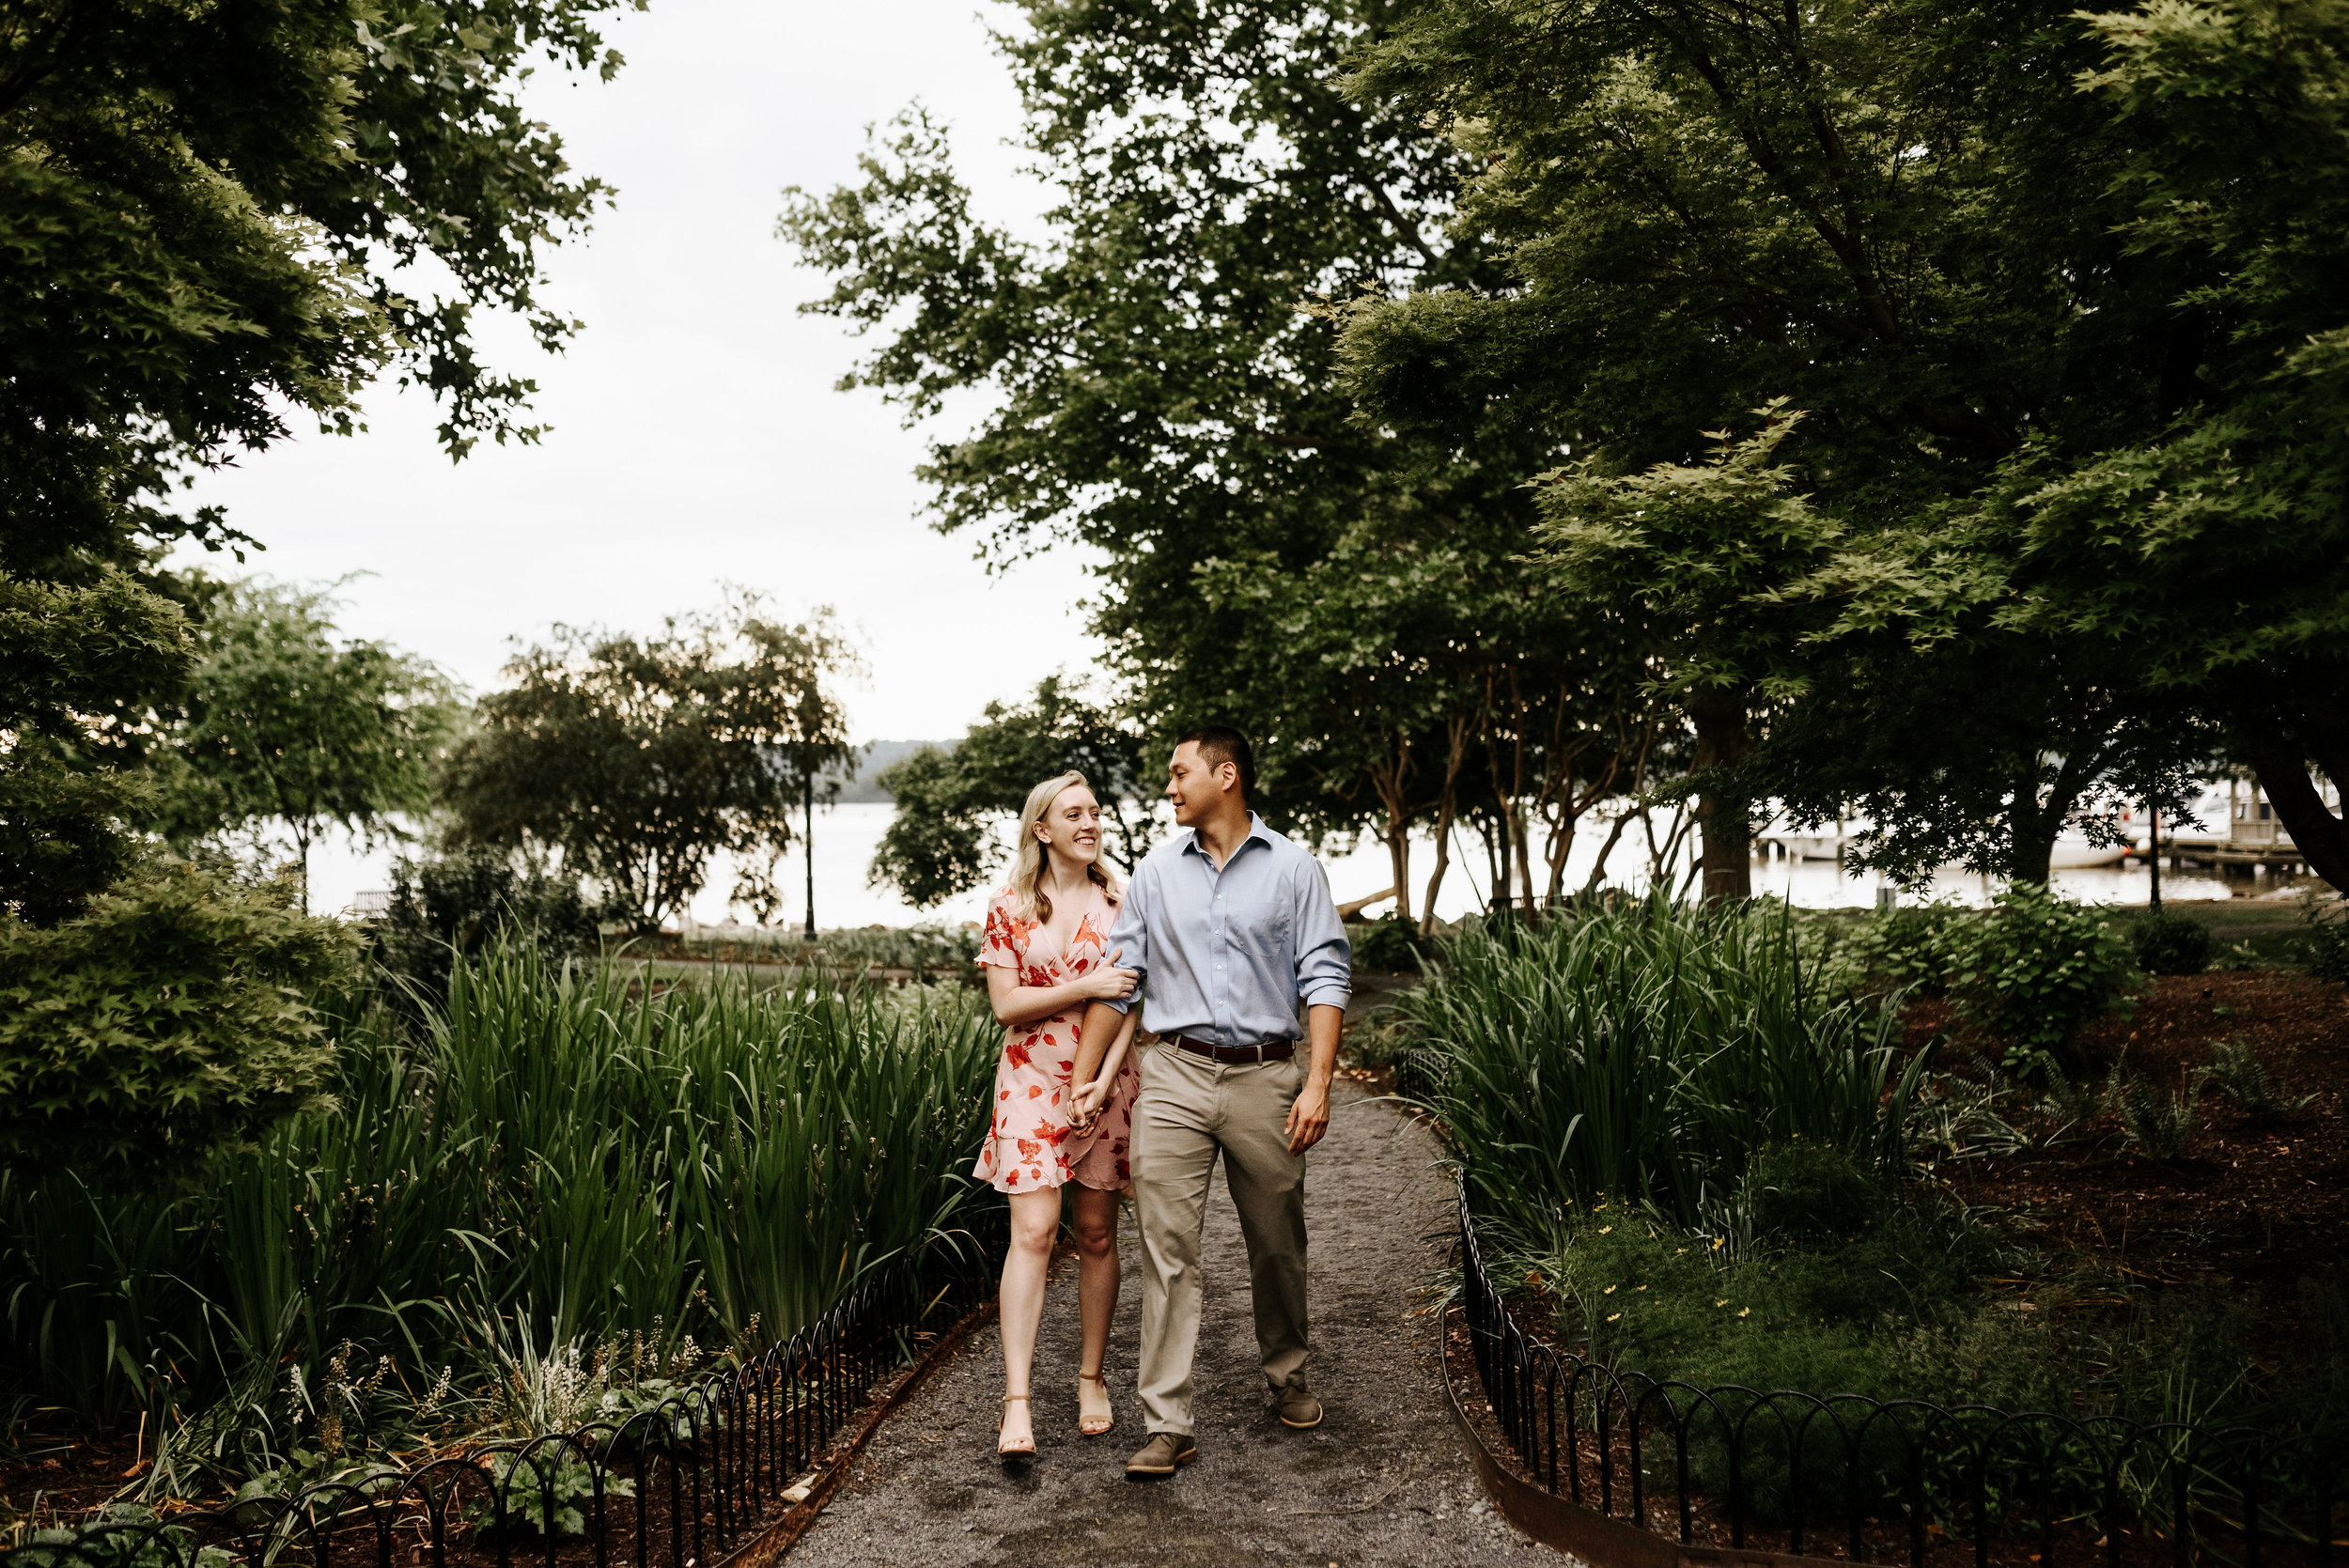 Bella_Alec_Old_Town_Alexandria_Engagement_Session_Photography_by_V_5689.jpg